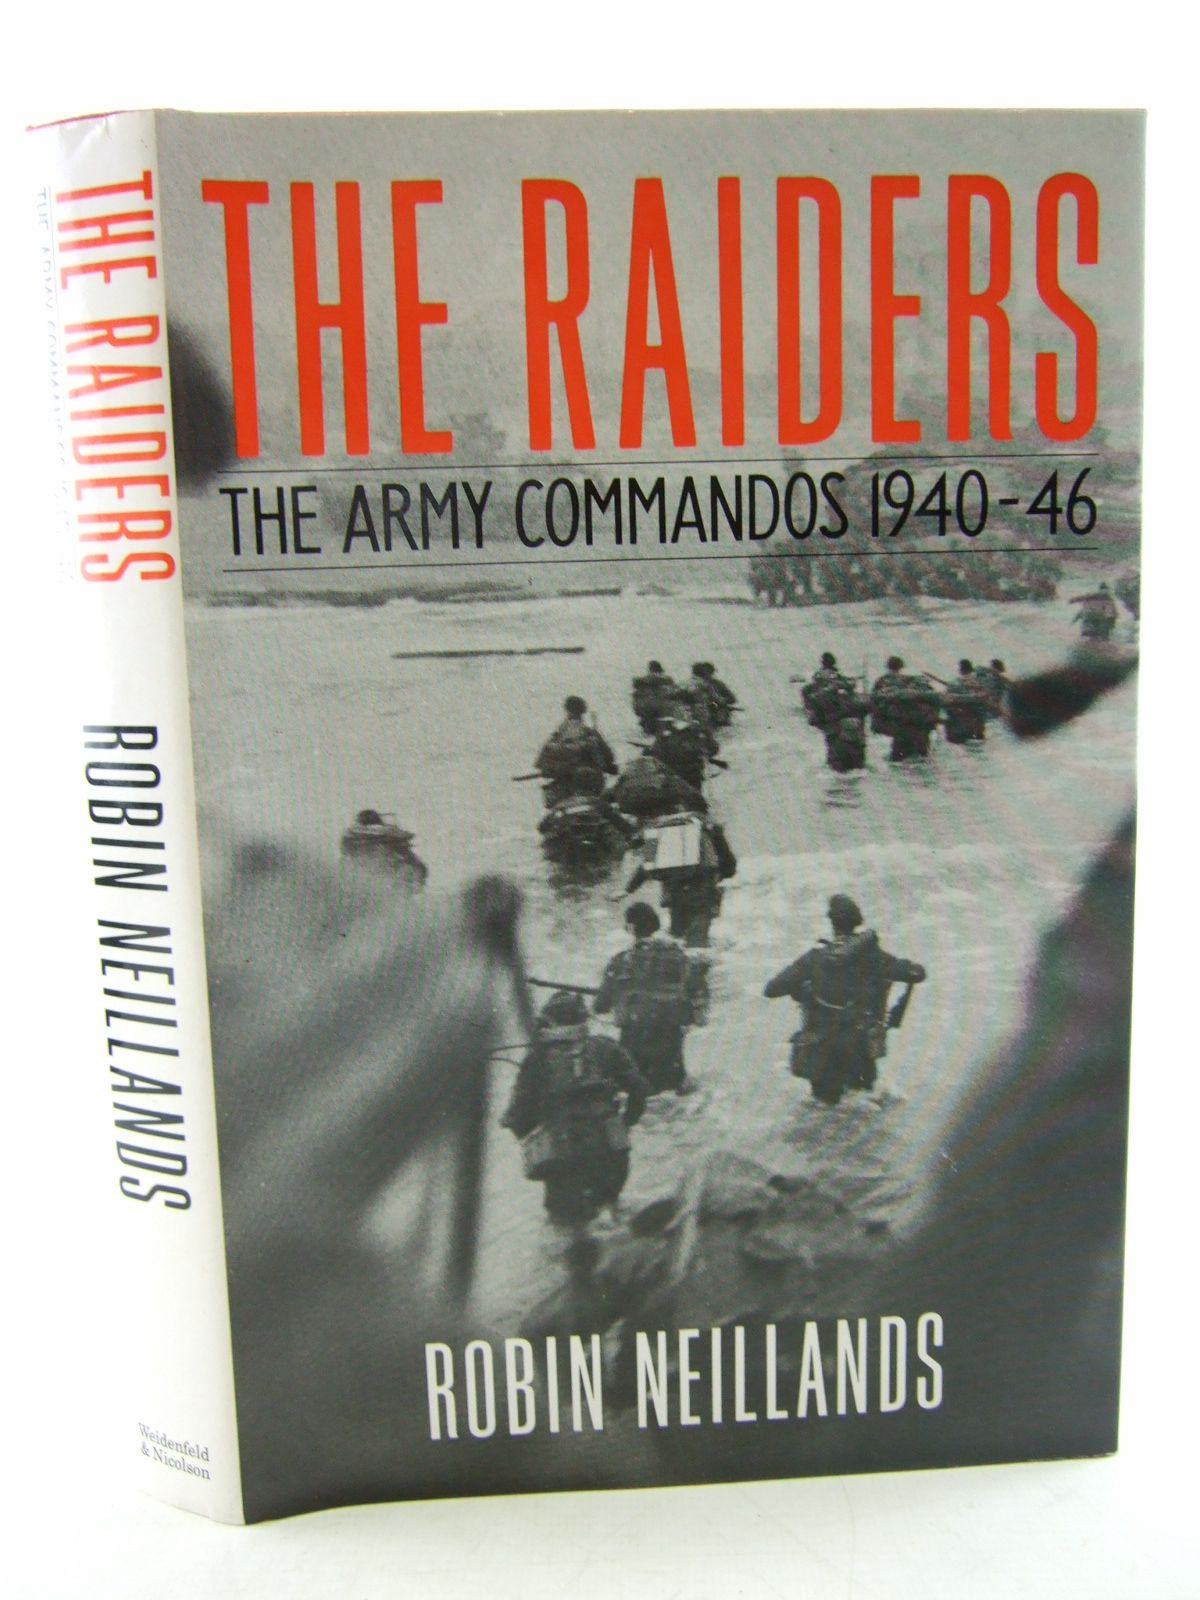 Photo of THE RAIDERS THE ARMY COMMANDOS 1940-1946 written by Neillands, Robin published by Weidenfeld and Nicolson (STOCK CODE: 1806743)  for sale by Stella & Rose's Books